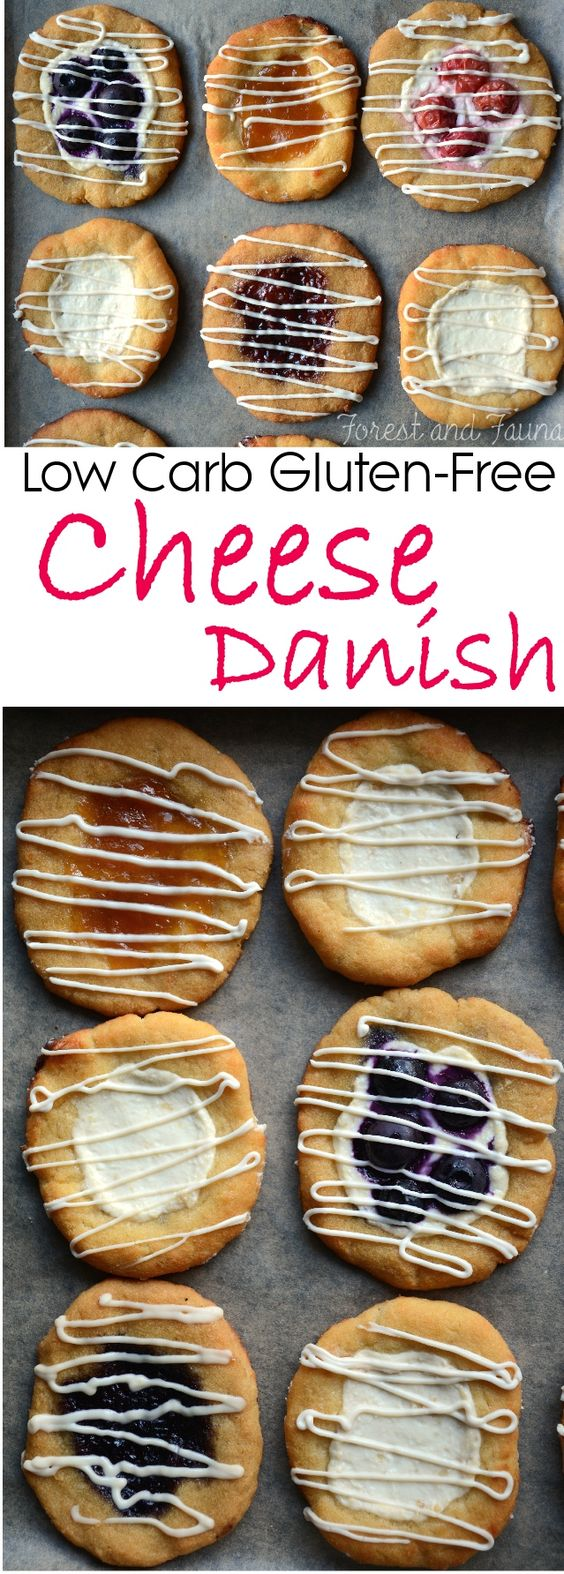 Low Carb Cheese Danish - Nut-Free made with Goat Cheese (as little as ...